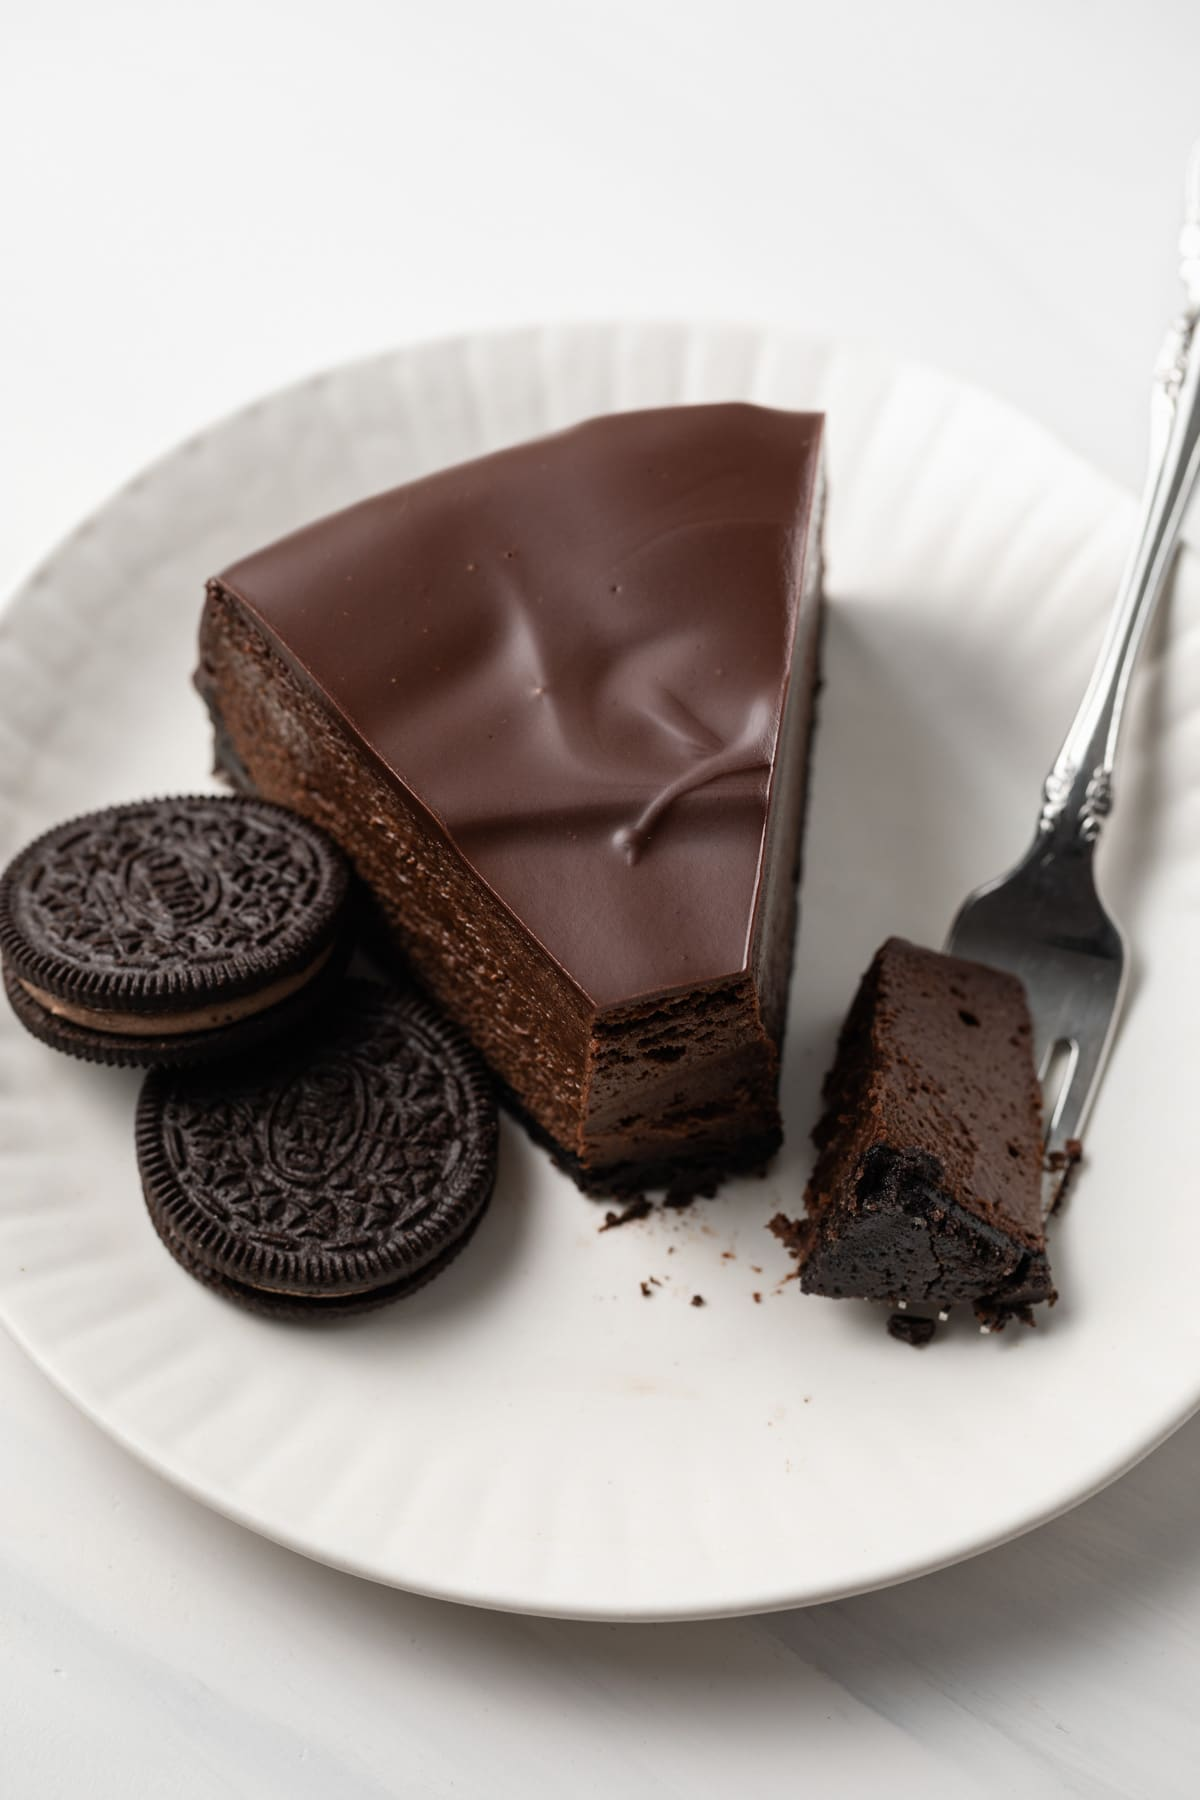 A slice of creamy triple chocolate cheesecake with a fork taking a bite out.